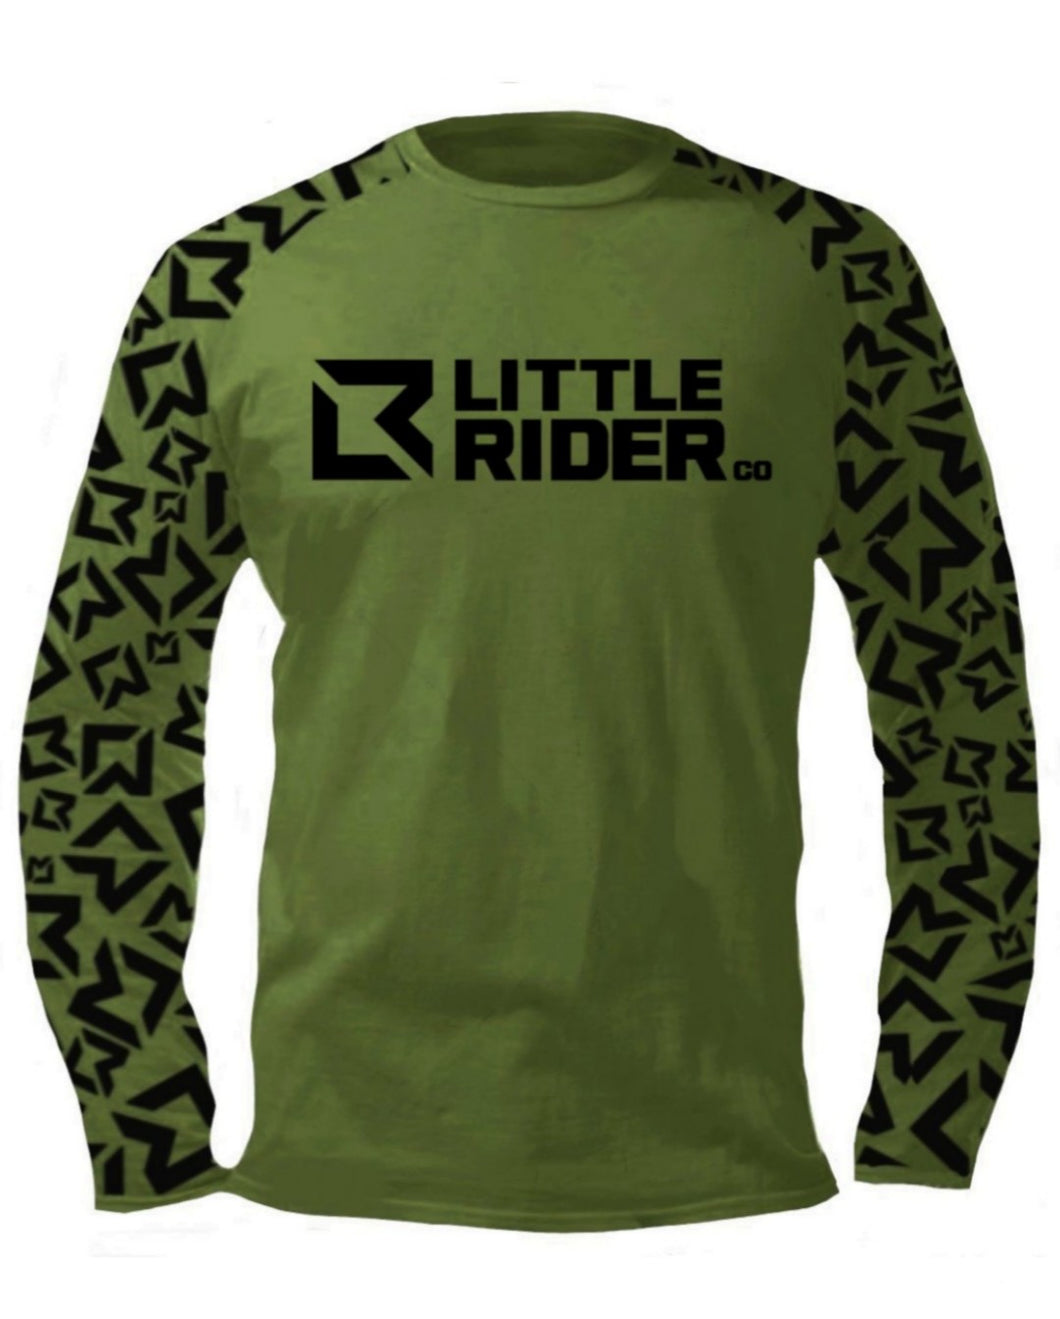 Little Rider Co Jersey - Army Green (END OF LINE)